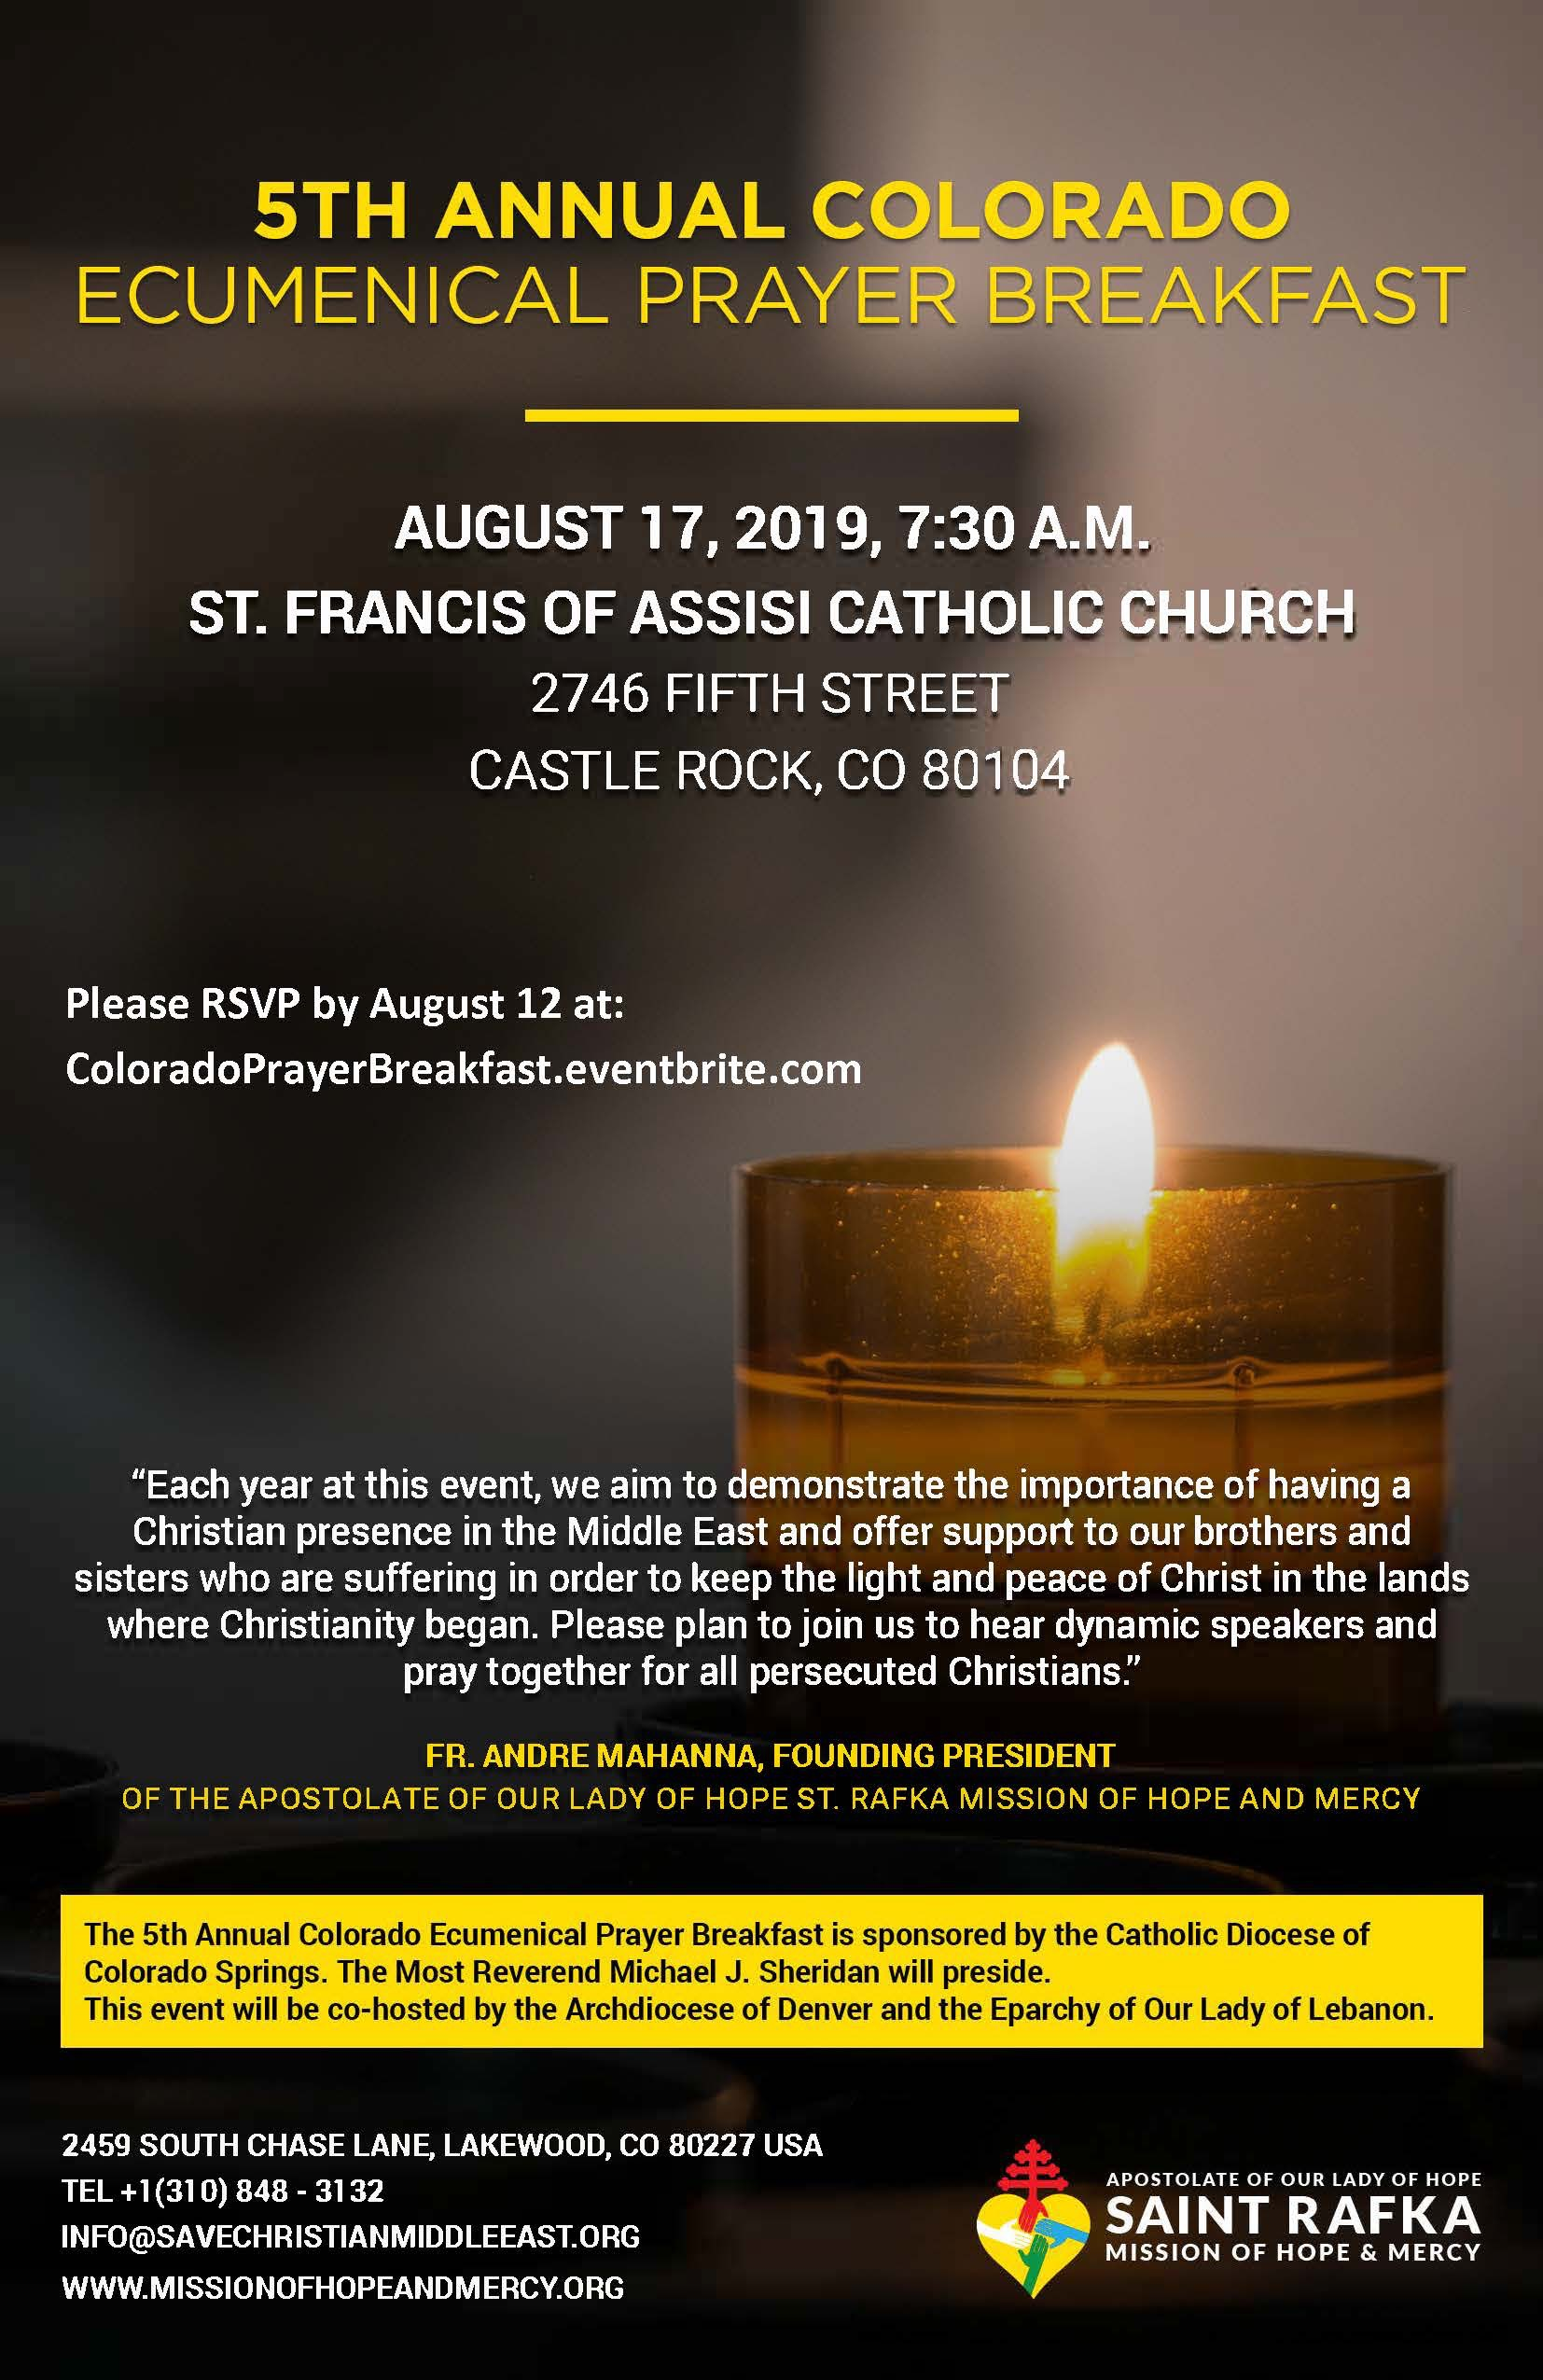 5th Annual Colorado Ecumenical Prayer Breakfast August 17, 7:30 am